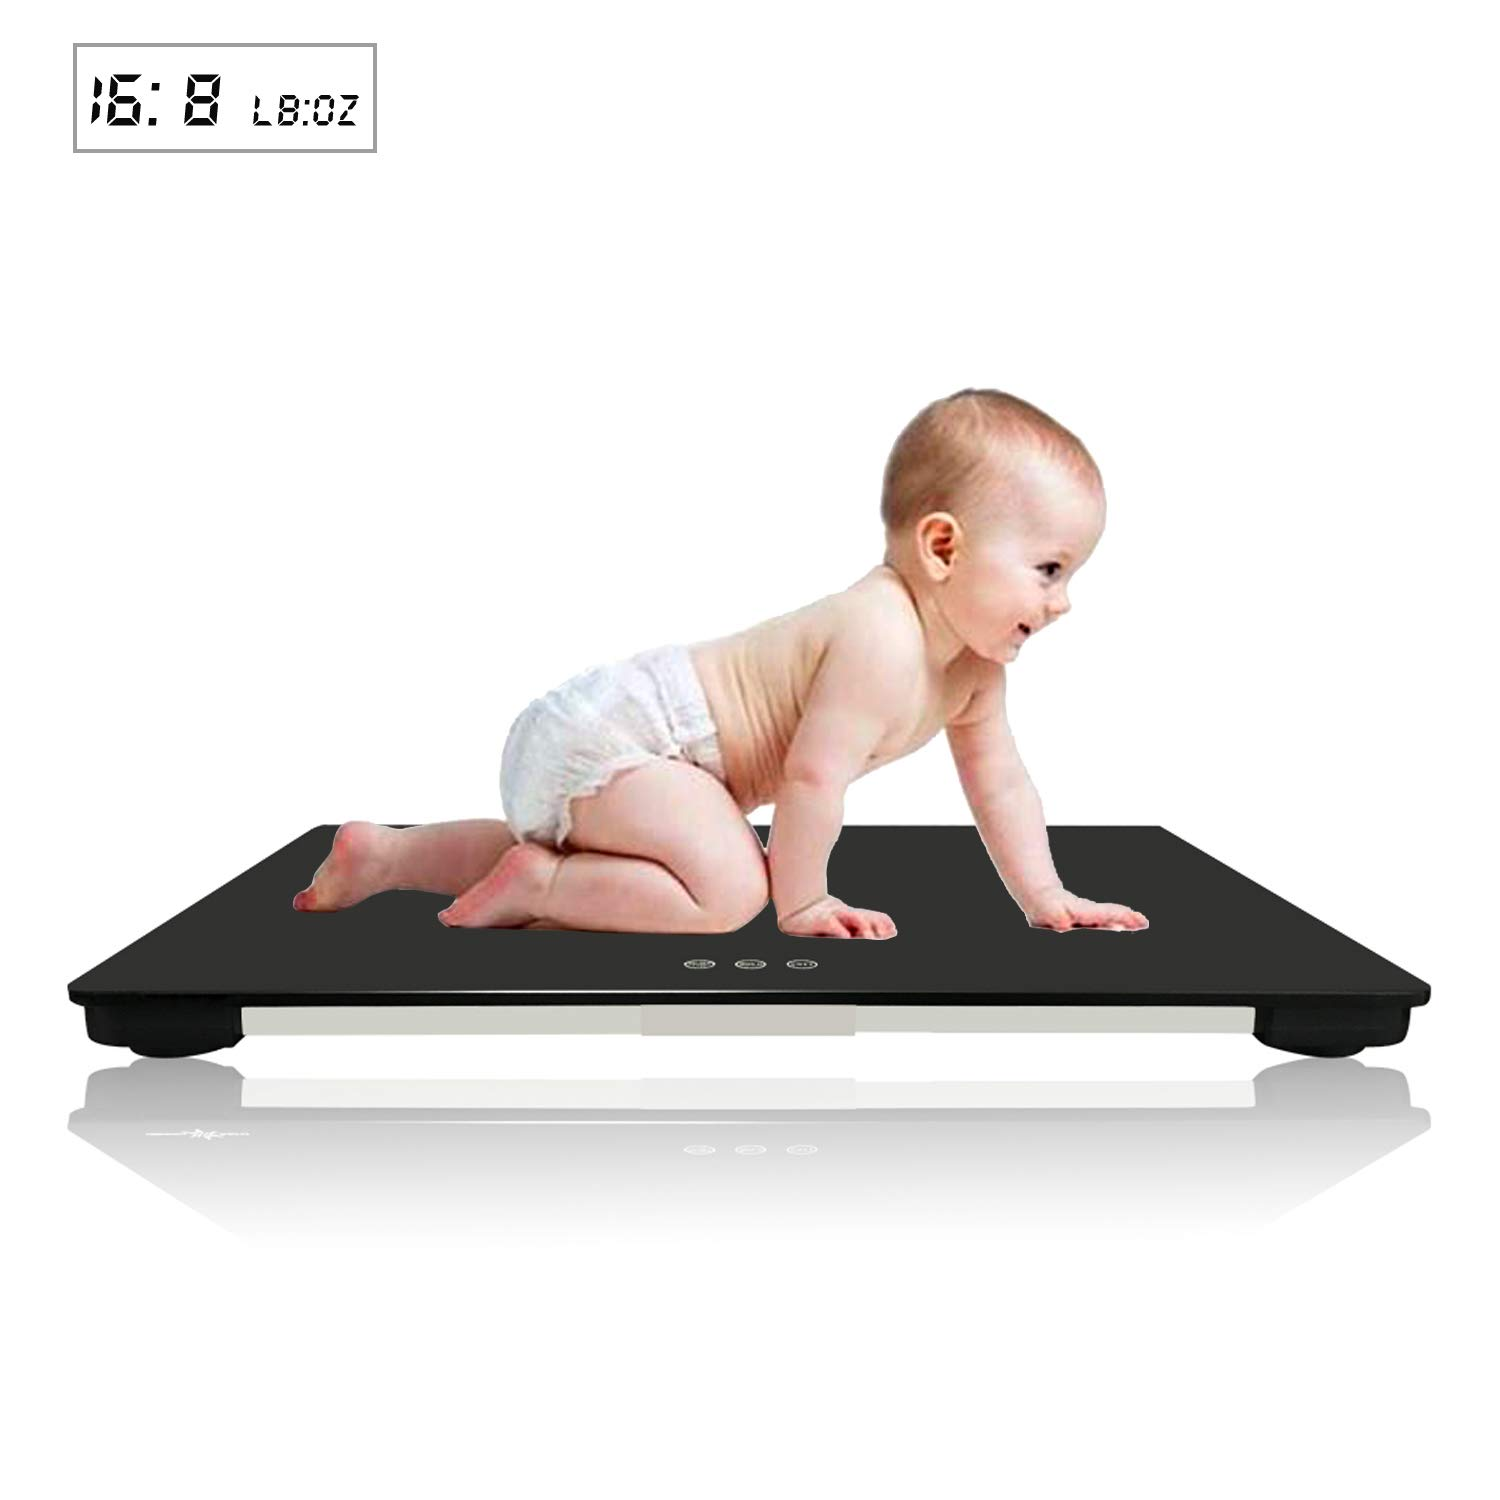 iSnow-Med Multi-Function Digital Baby Scale For Infant/Baby / Adult, 220 LBS (± 0.02LB) Capability, Blue Backlit, KG/OZ/LB (60 CM) Intu-MedTime 4332442969